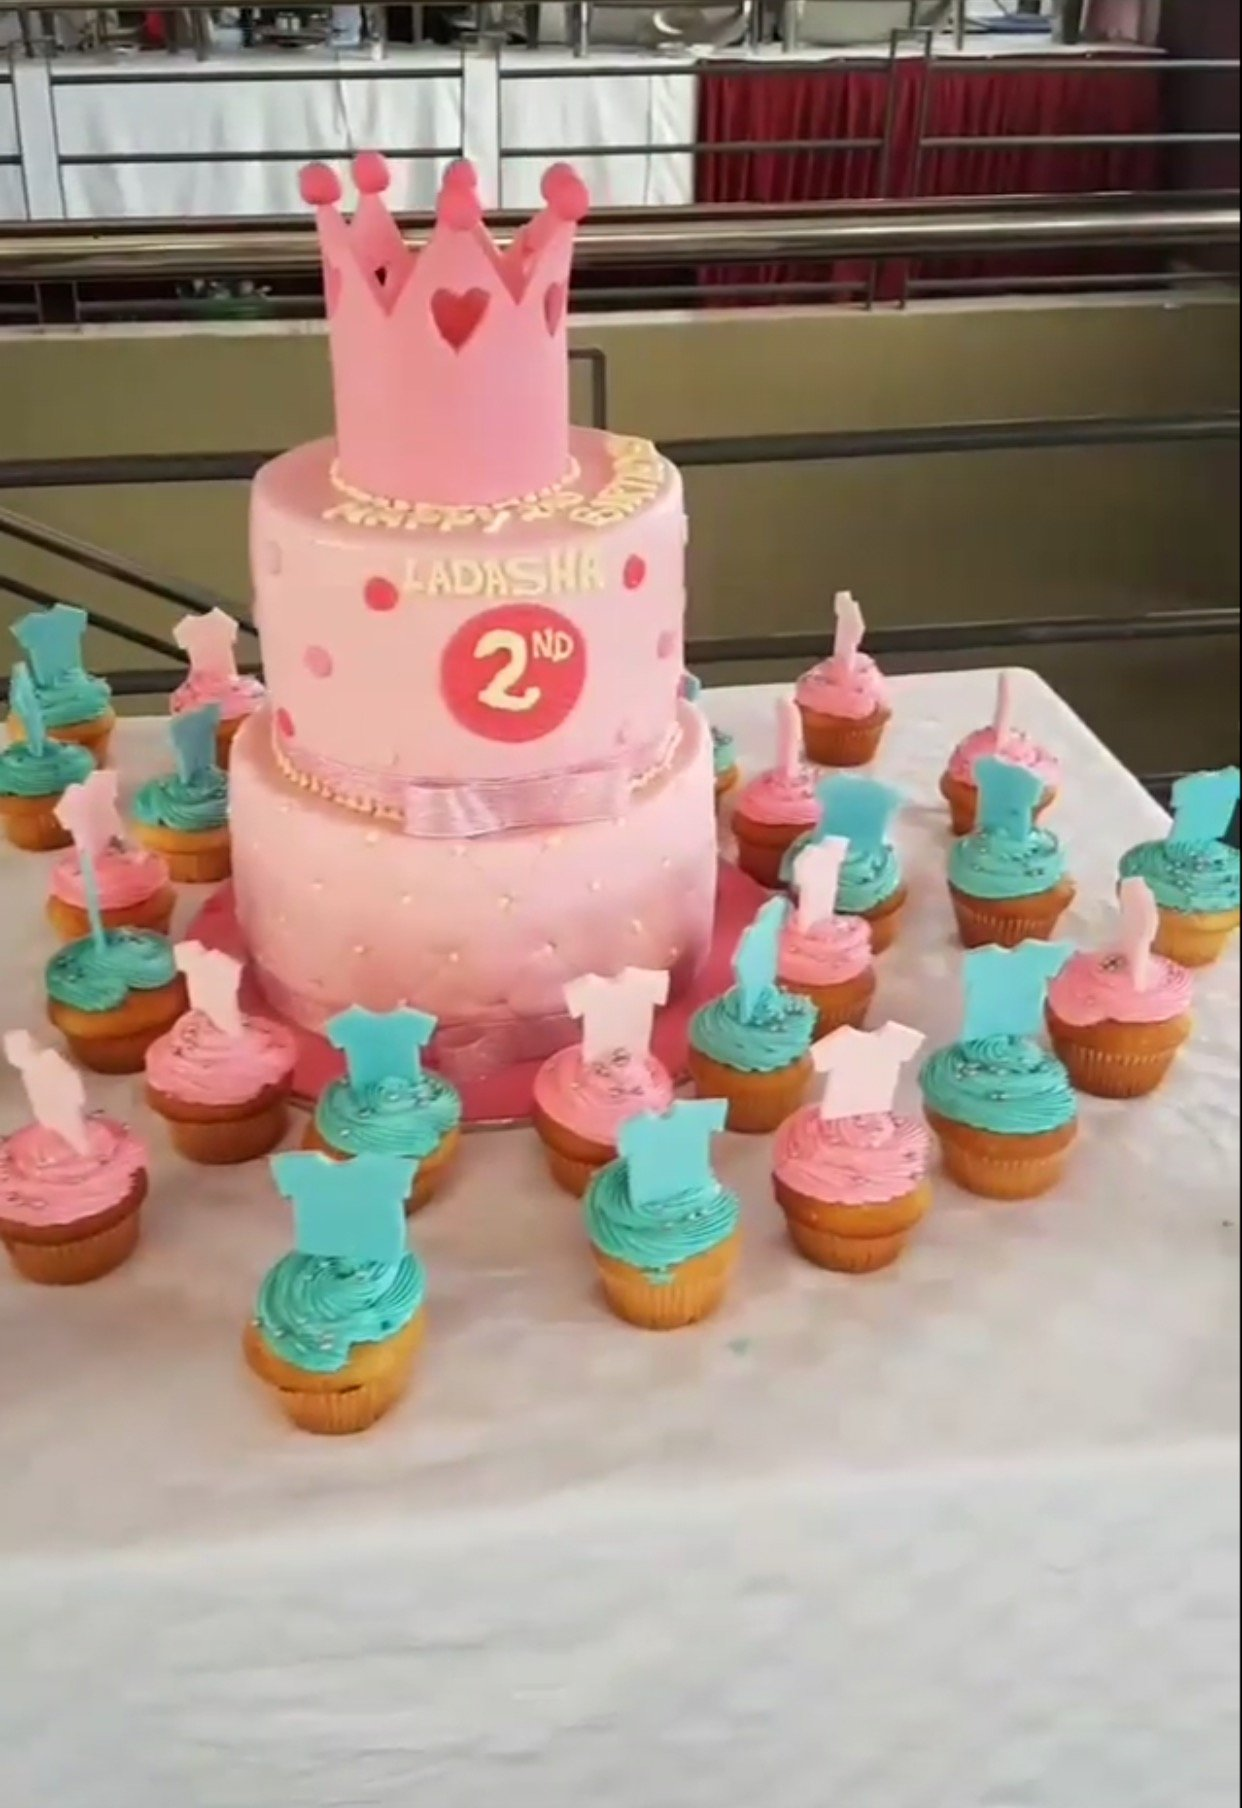 Like A Boss Baby Check Out The Delicious Looking Birthday Cake Size